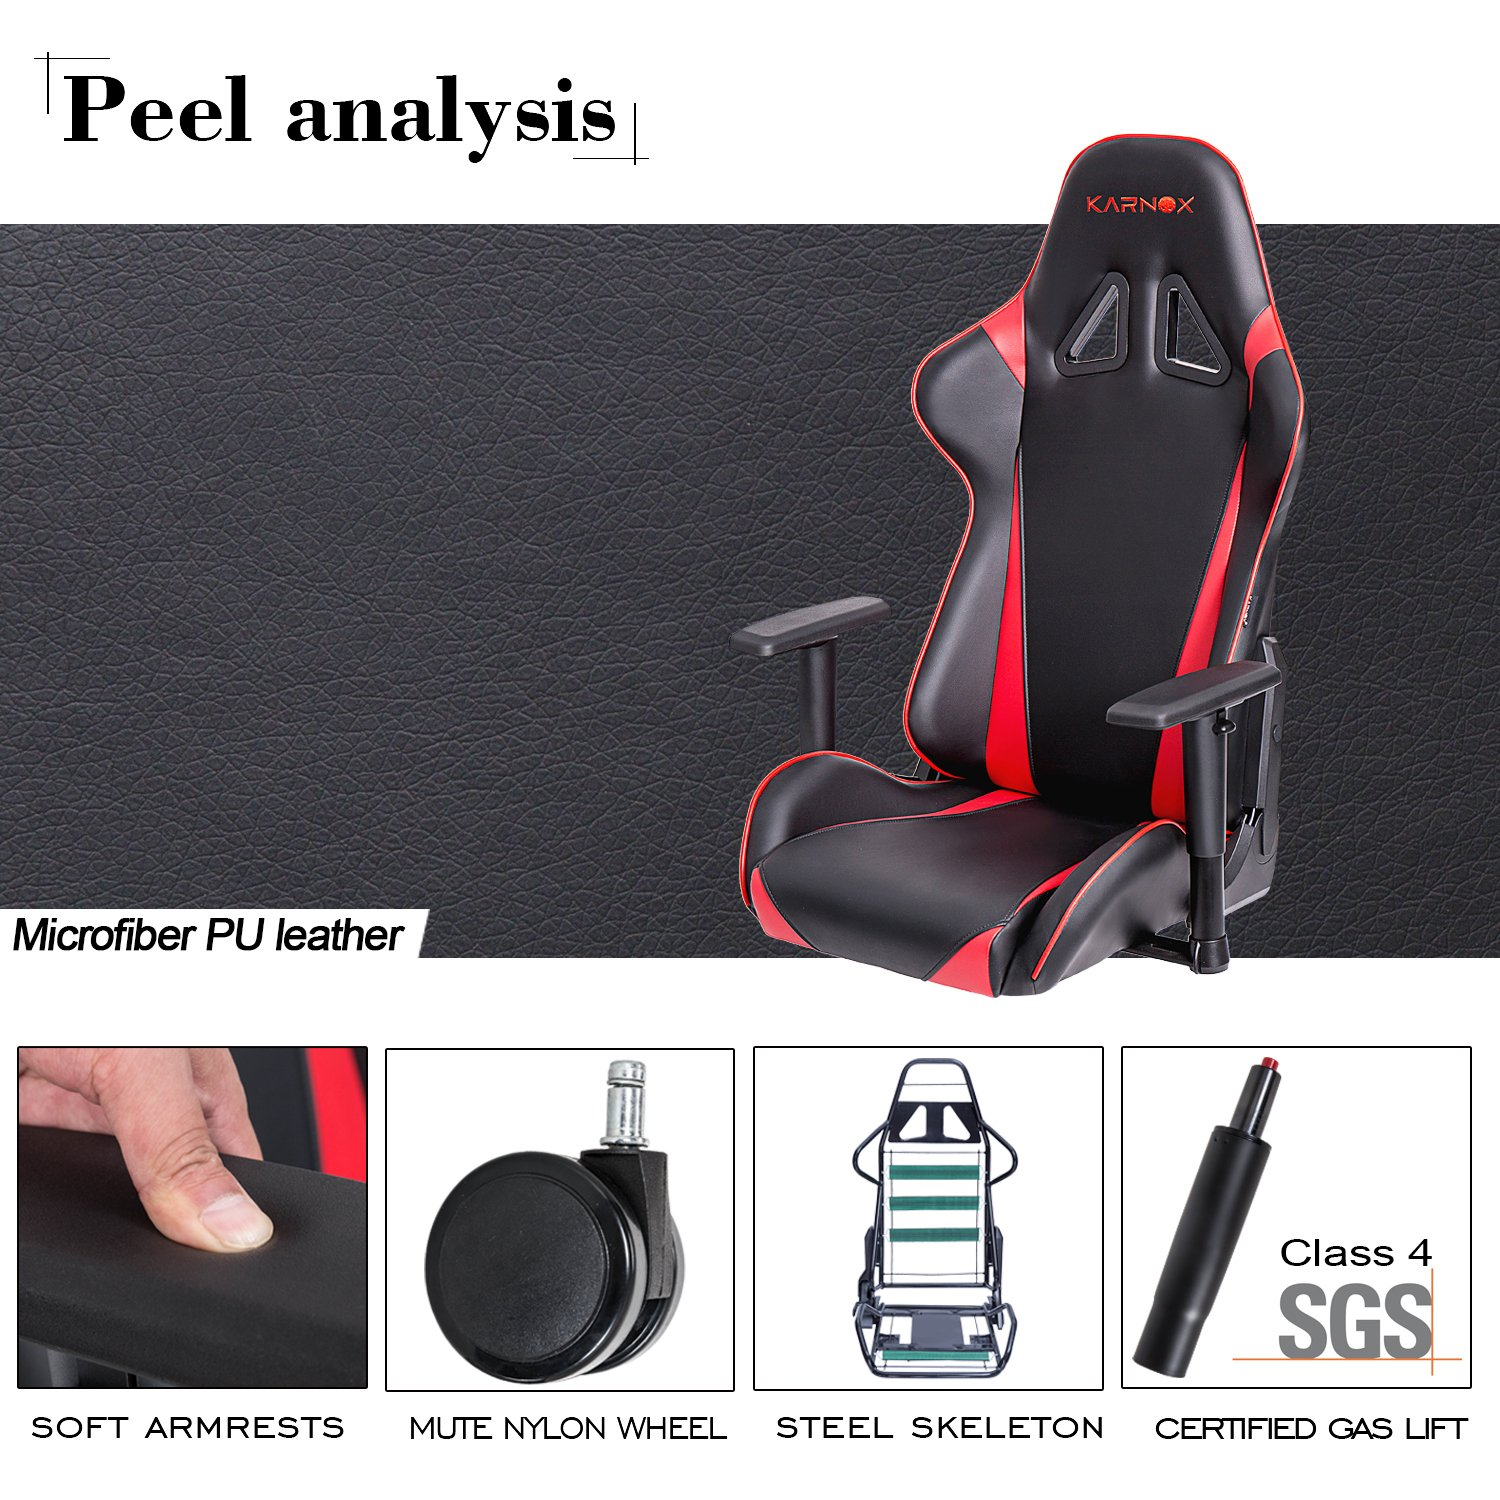 Strange Karnox Hero X Red Black Racing Style Gaming Office Chair With Adjustable Height And Armrests Ergonomic 1700 Reclining Locking High Back With Gmtry Best Dining Table And Chair Ideas Images Gmtryco